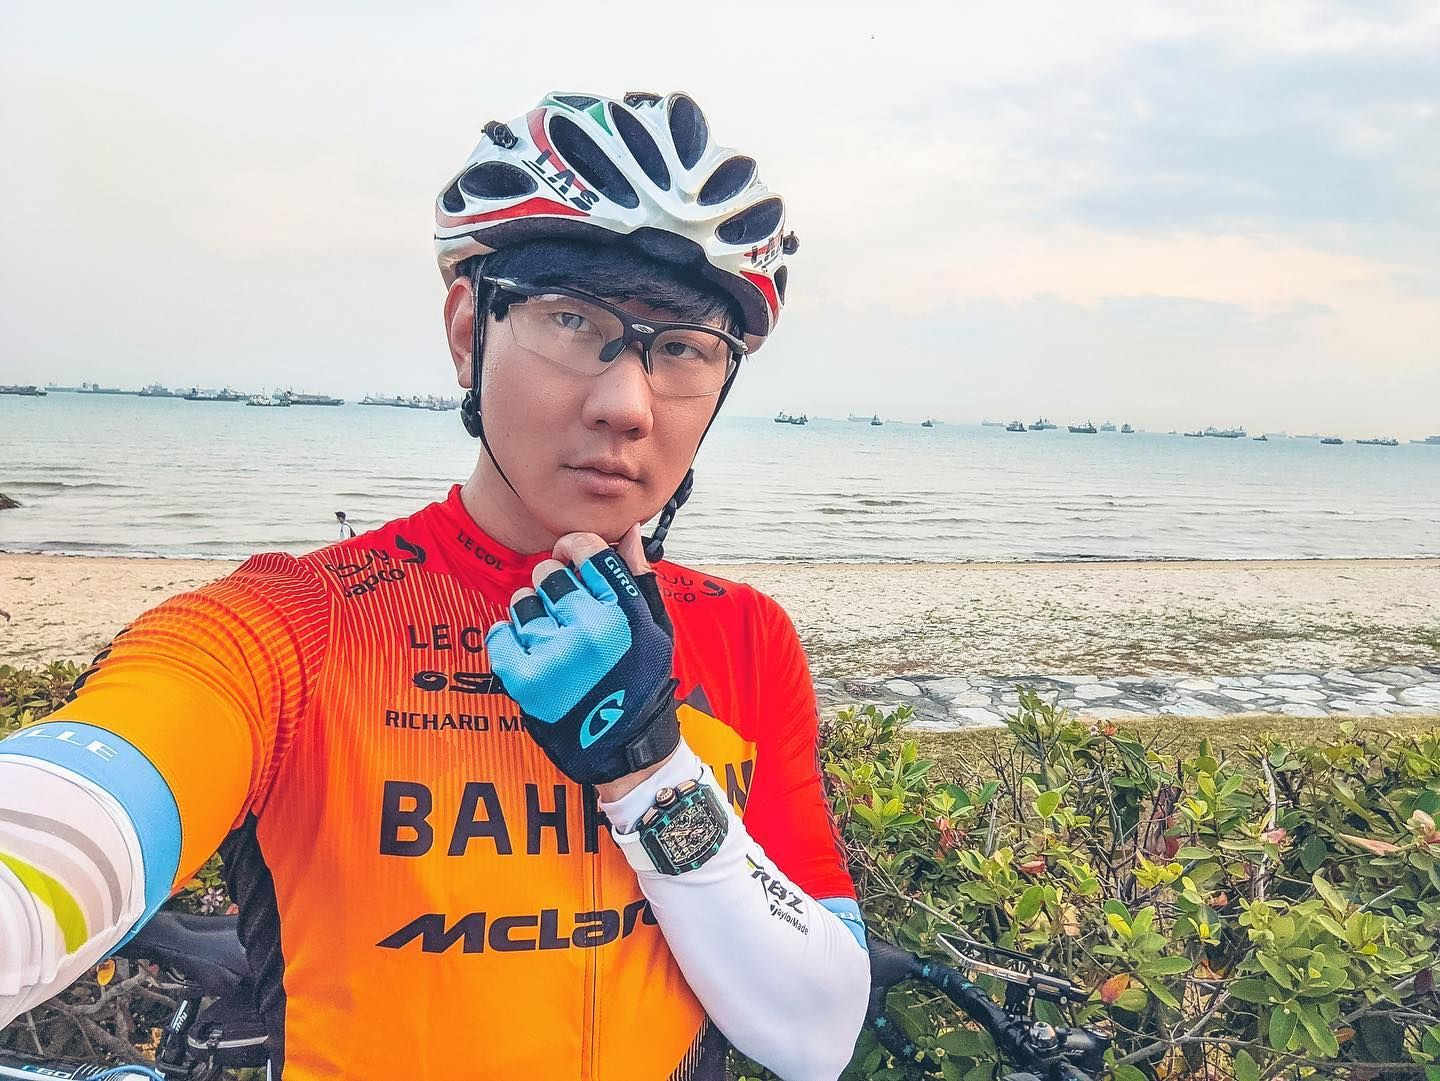 JJ Lin Spotted Wearing an Exclusive Richard Mille Watch While Out Cycling in Singapore